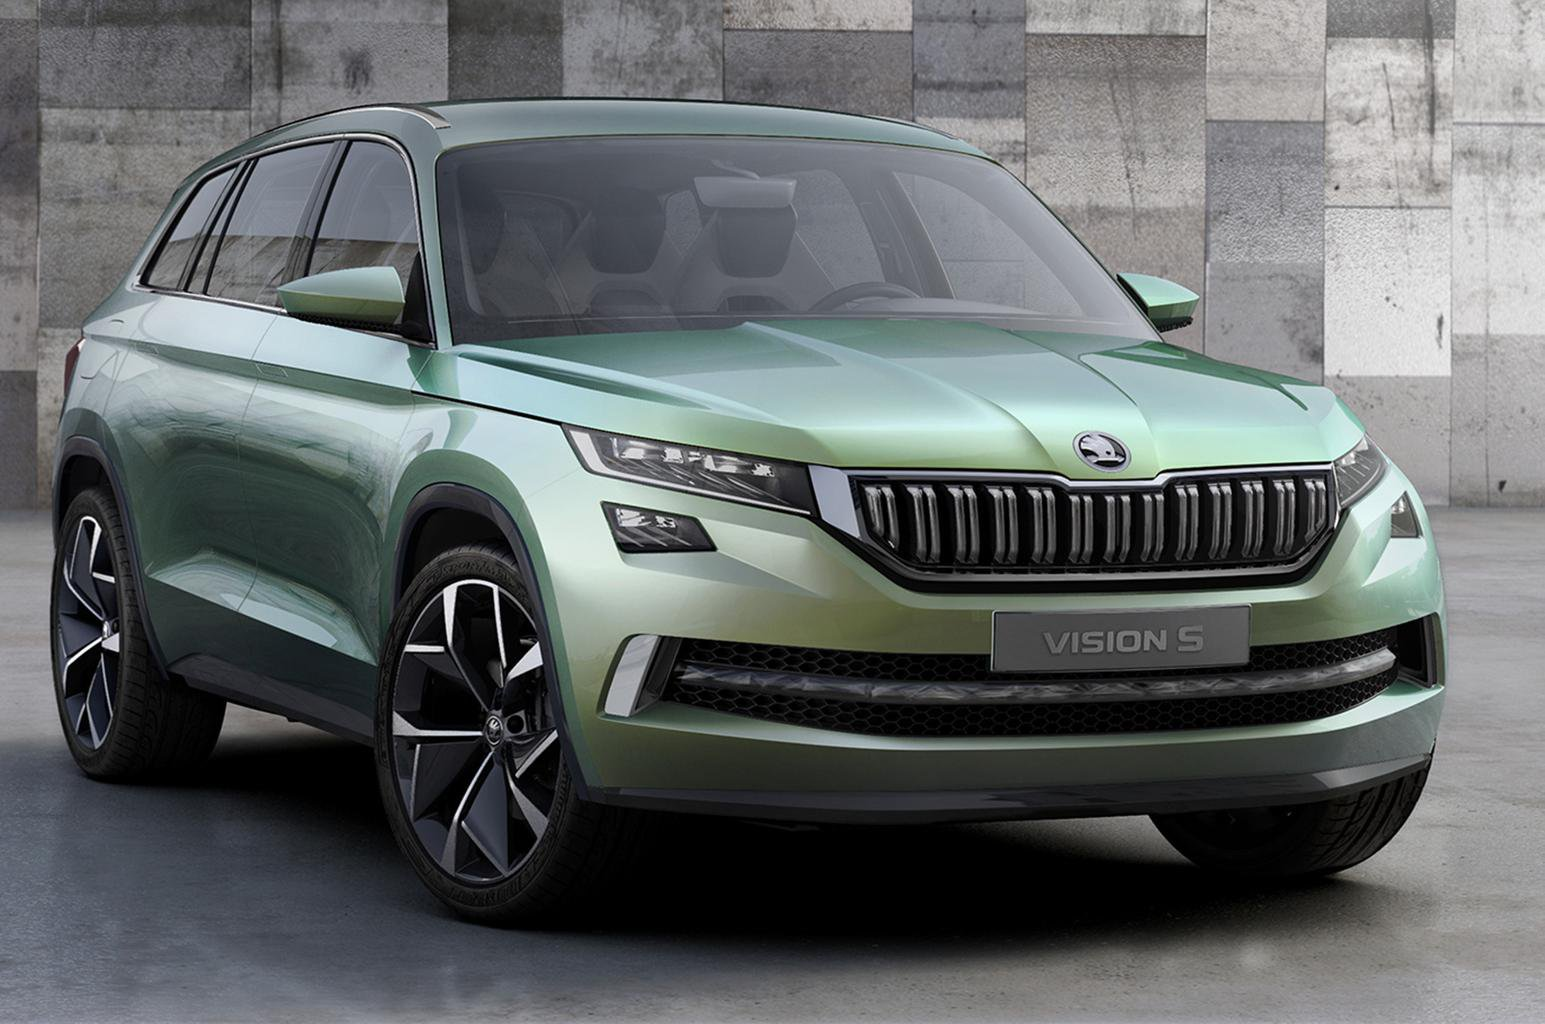 Skoda previews new SUV with VisionS concept